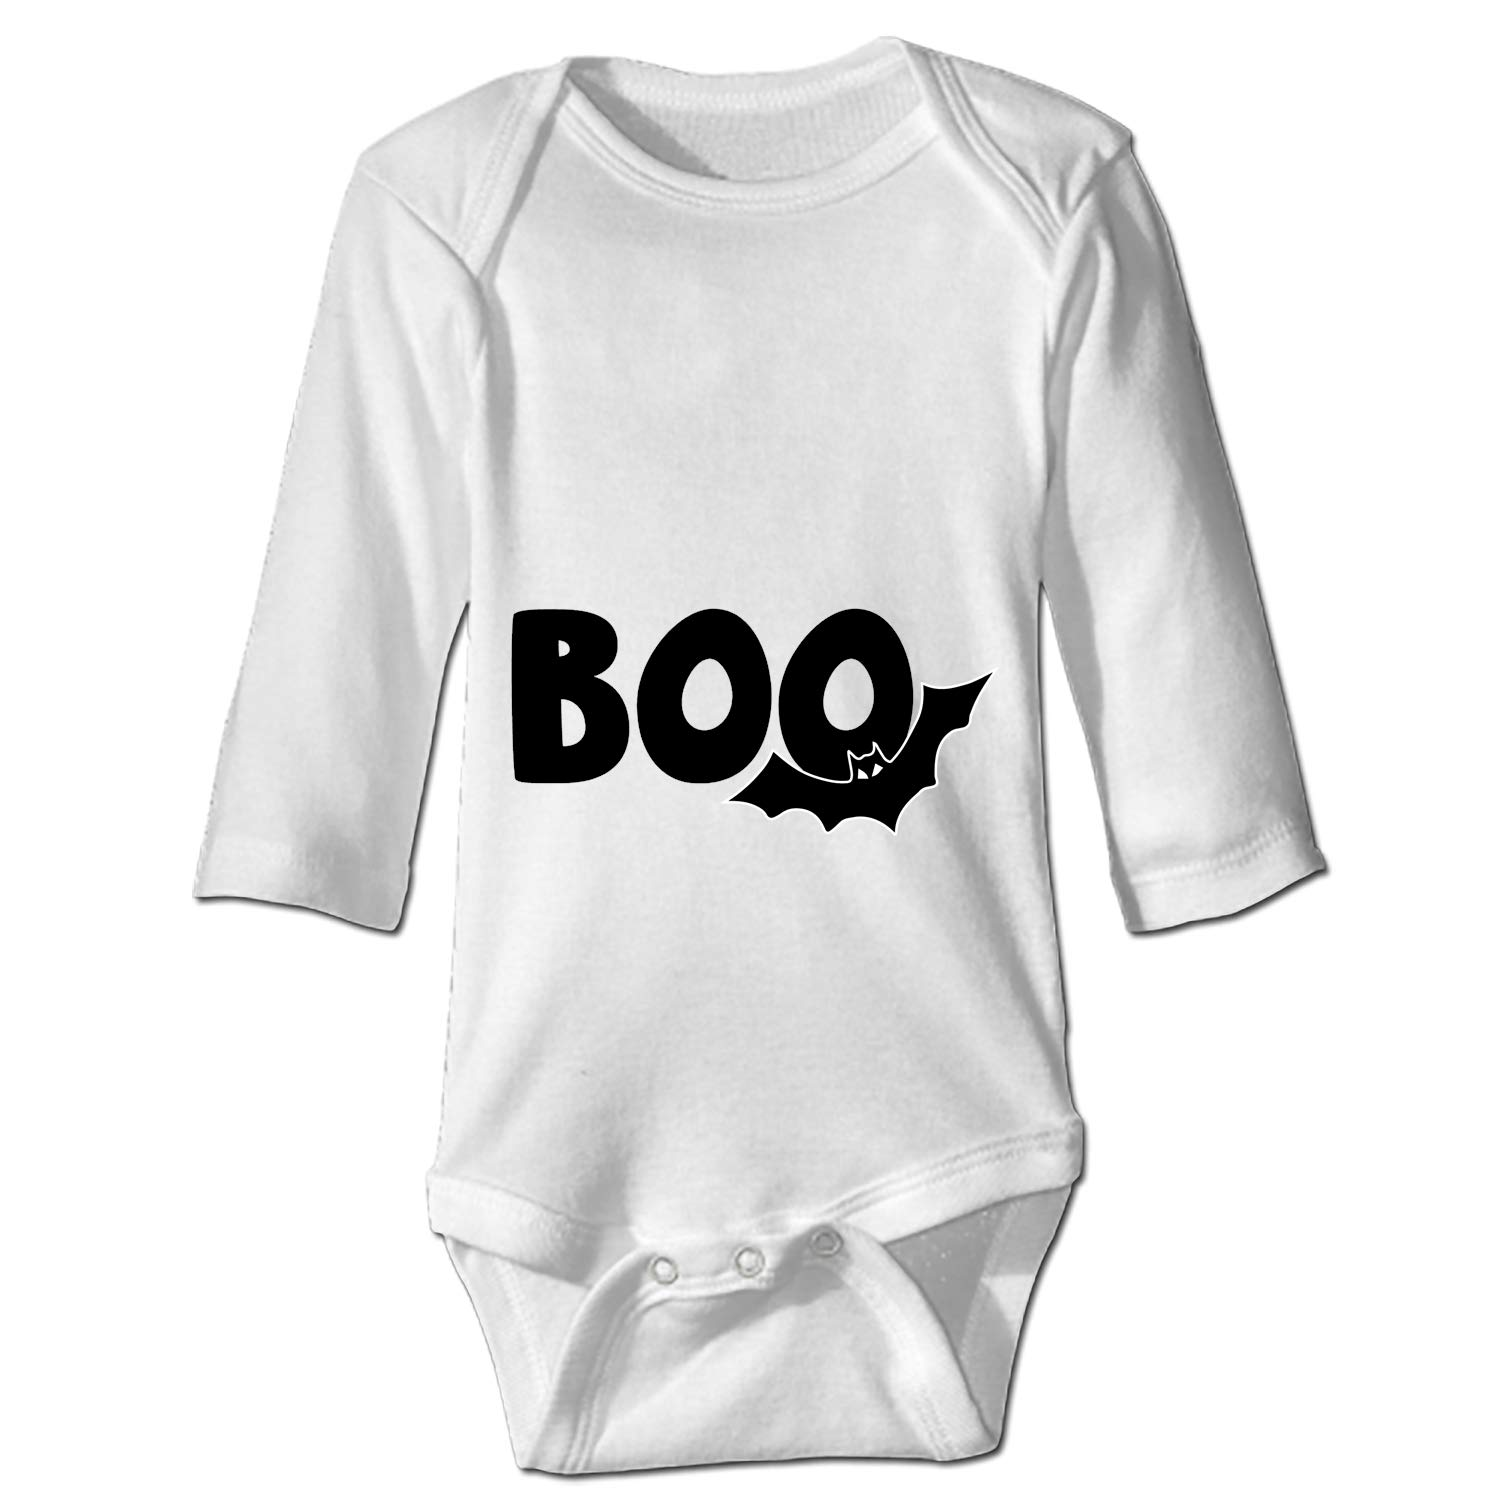 Happy Easter Zombie Egg Hunter Baby Infant One Piece Bodysuit Clothes 6-24M